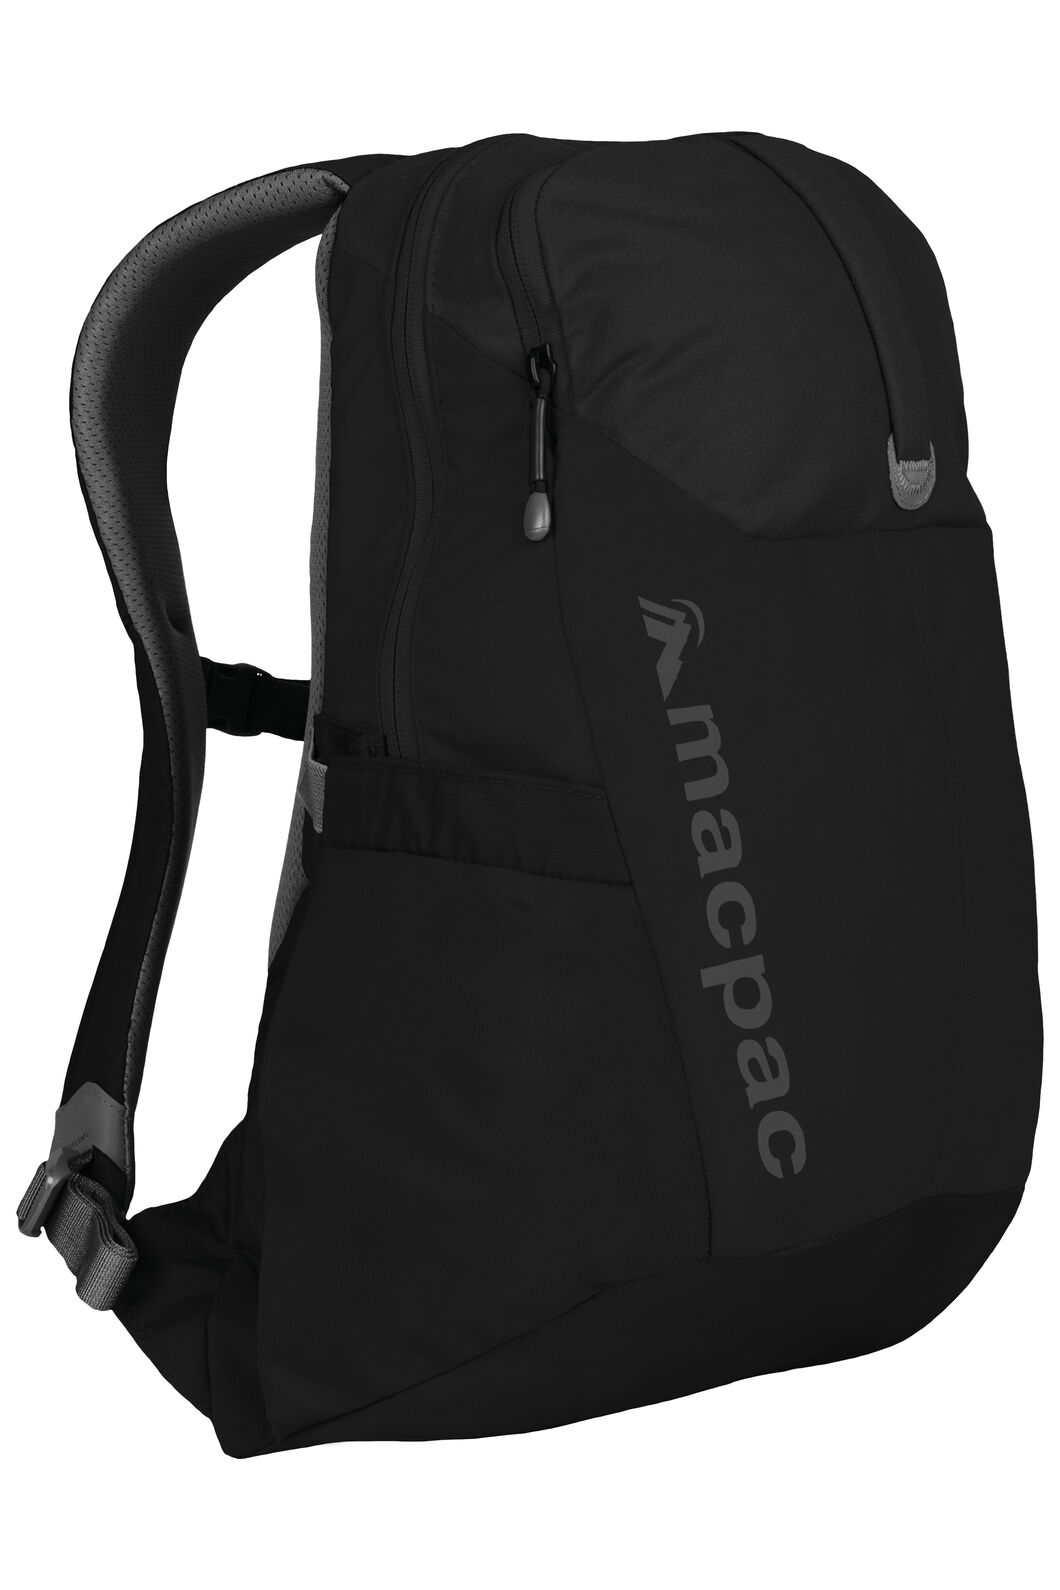 Macpac Korora 16L AzTec® Backpack, Black, hi-res